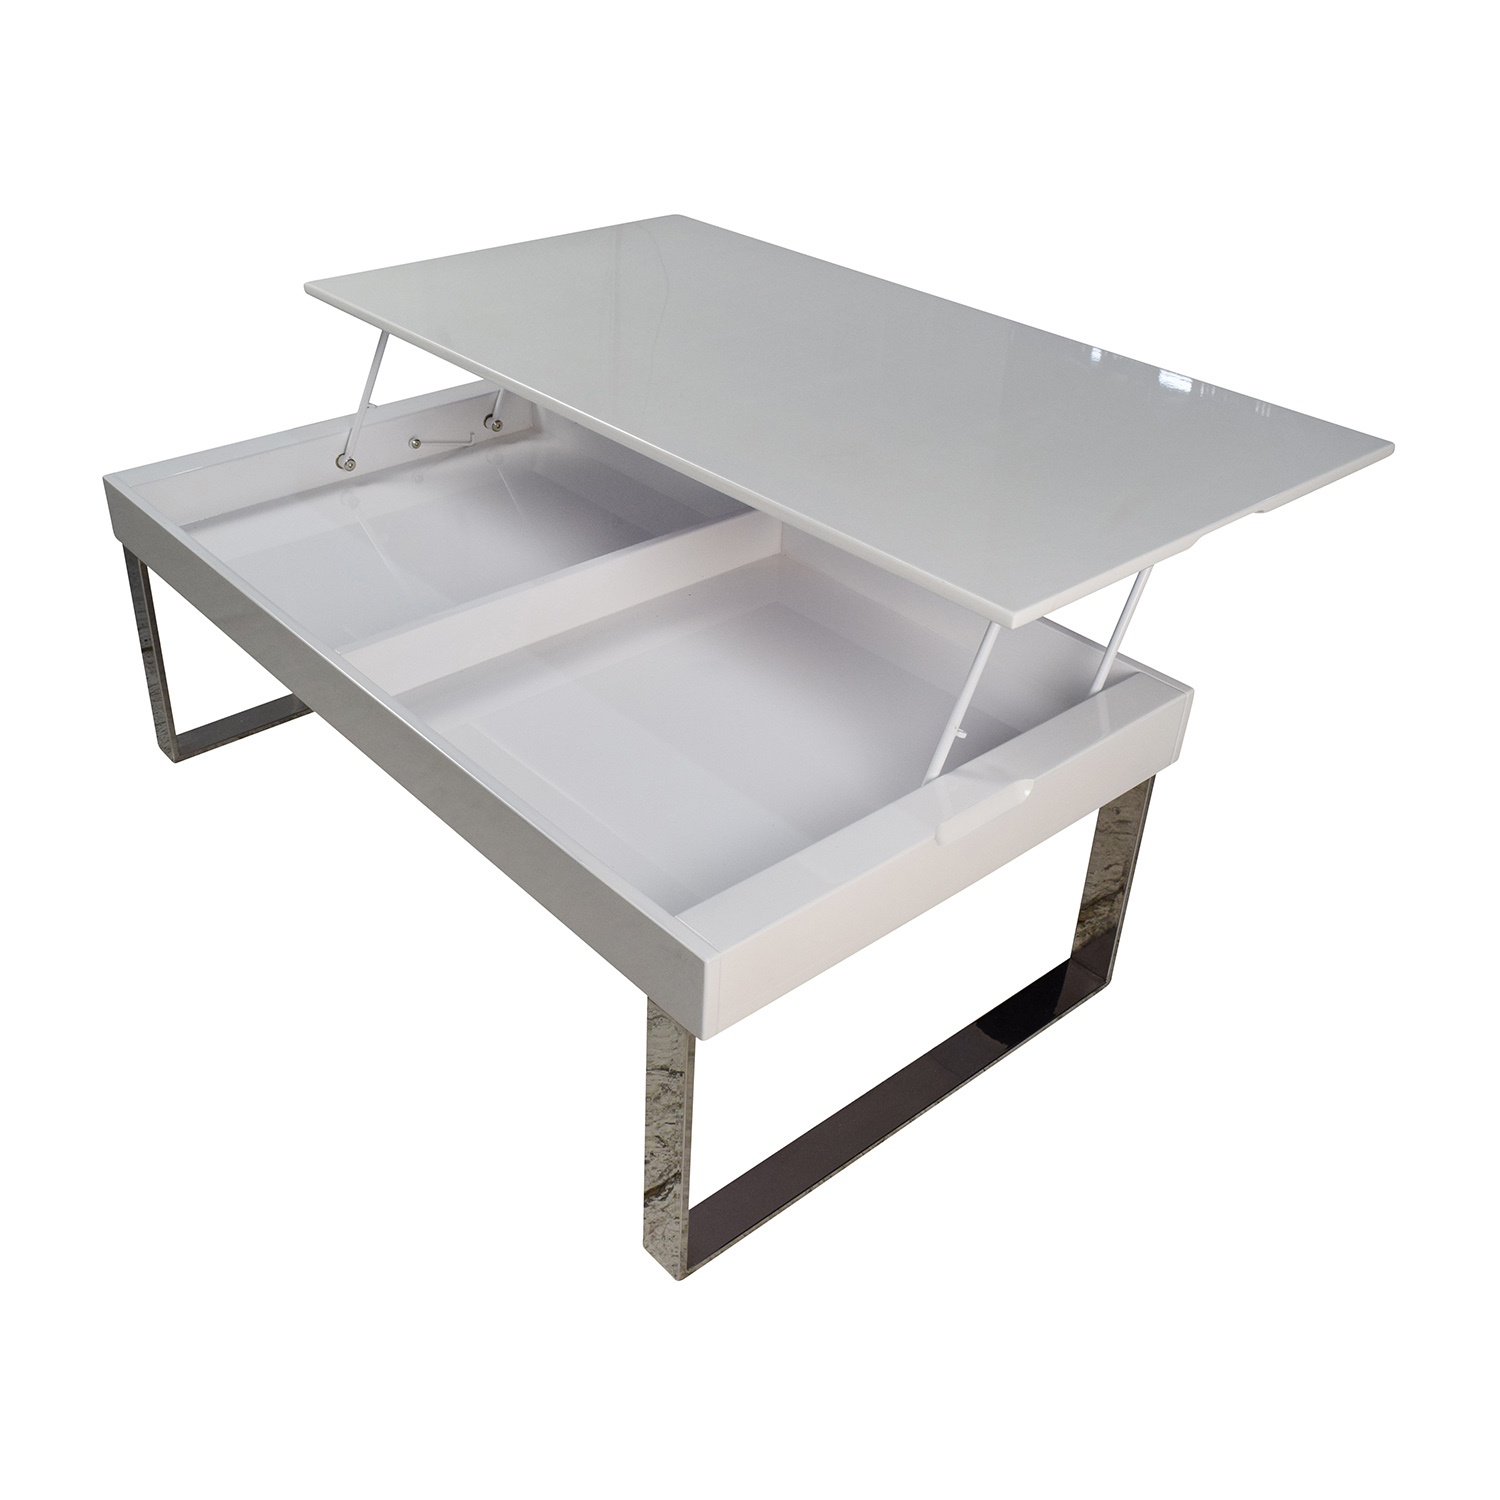 Lift Table Coffee Table: Halmstad Modern White Lift-Top Coffee Table / Tables